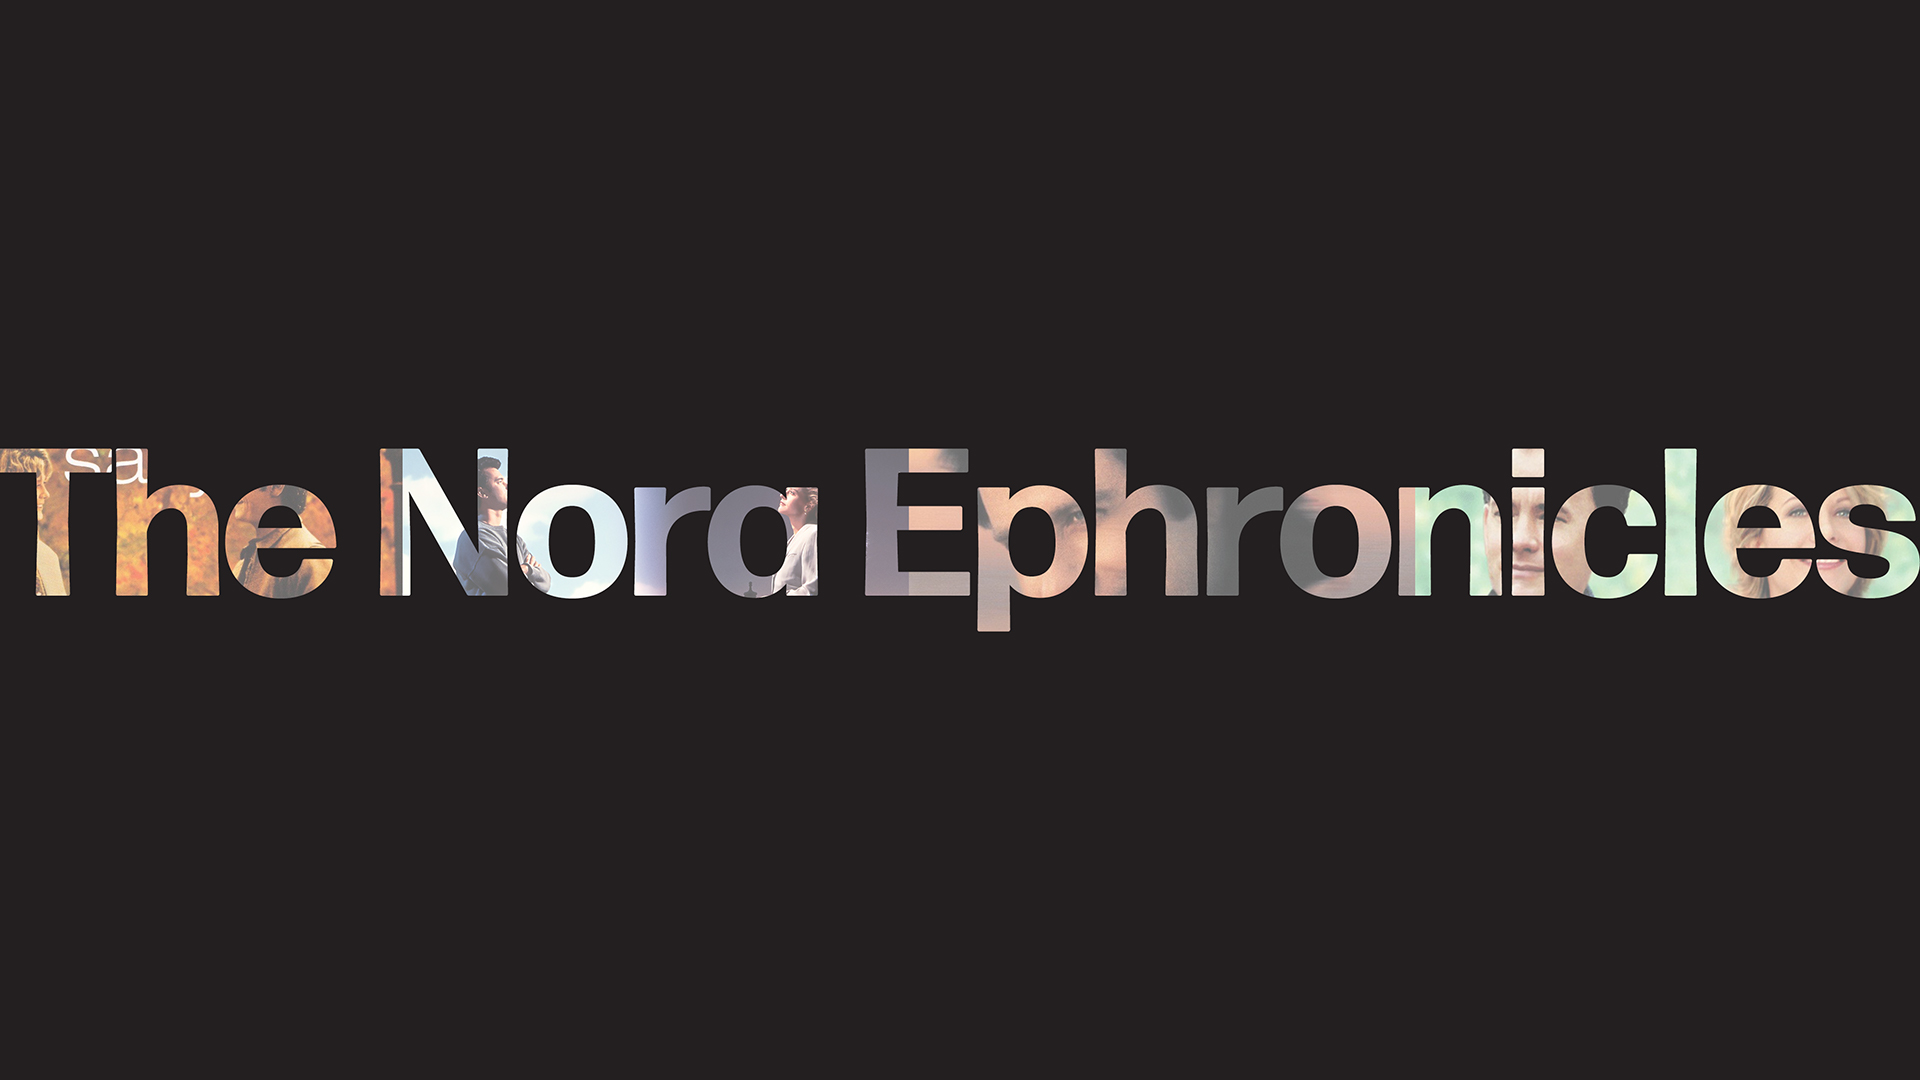 The Nora Ephronicles